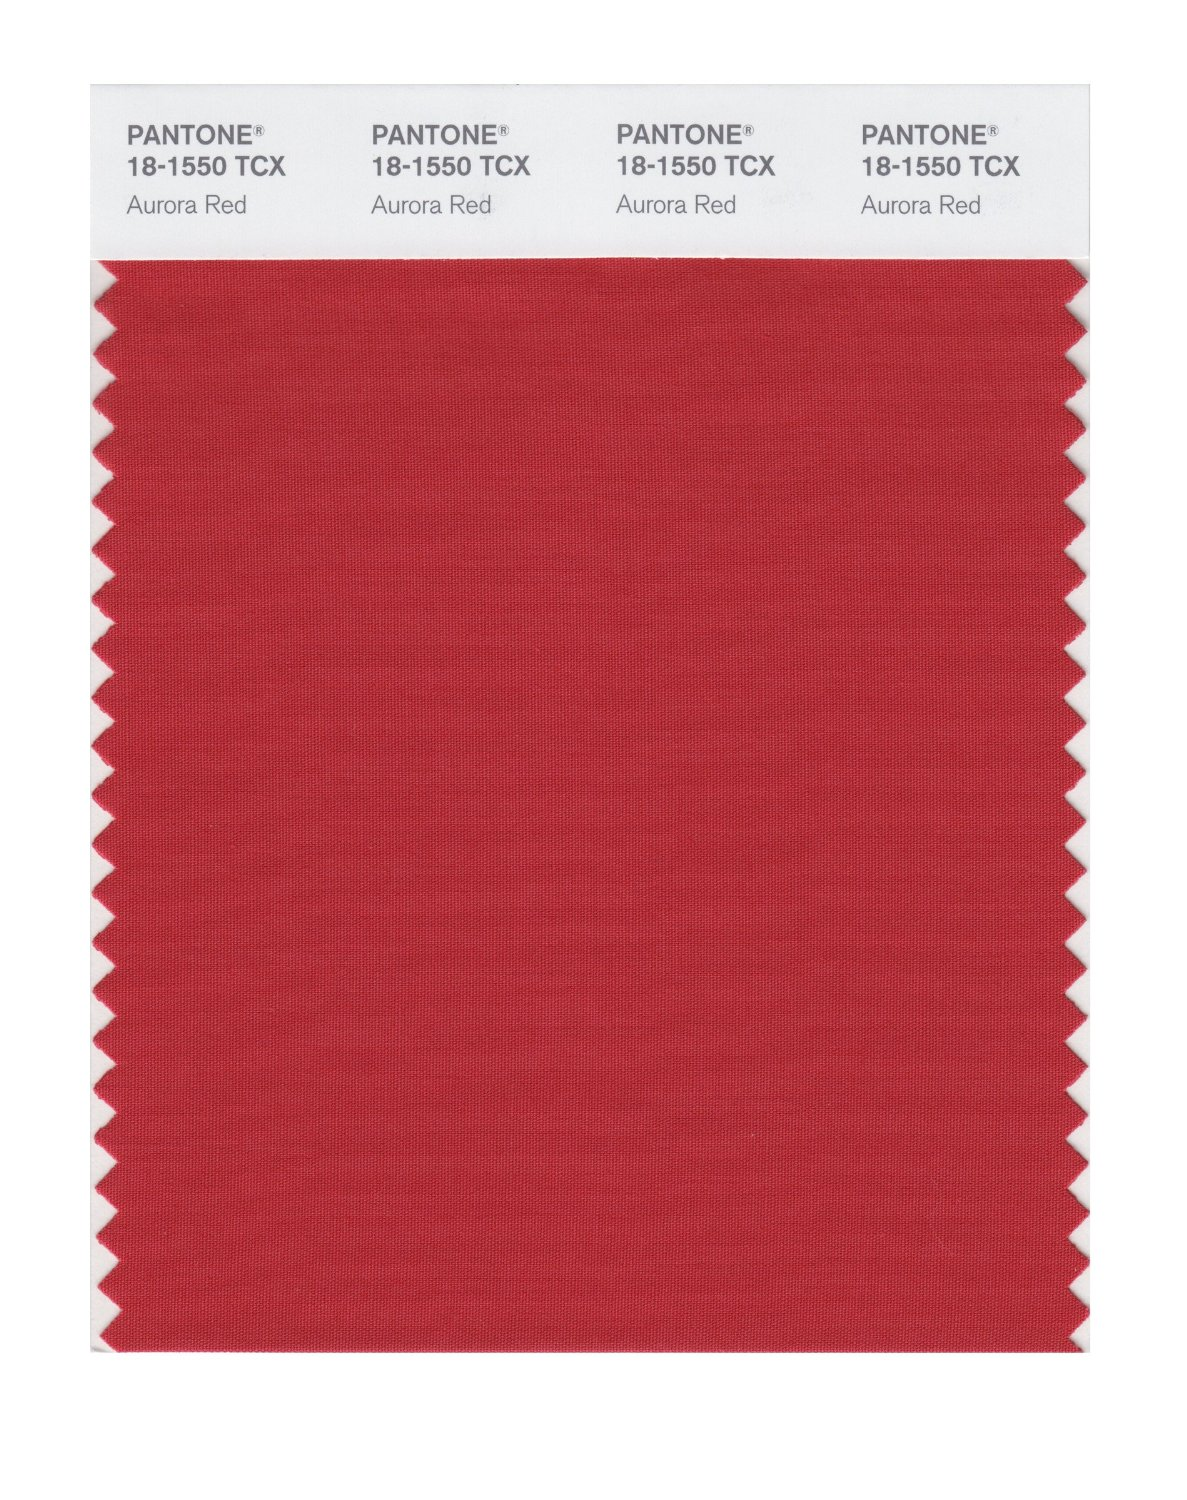 pantone aurora red - photo #20